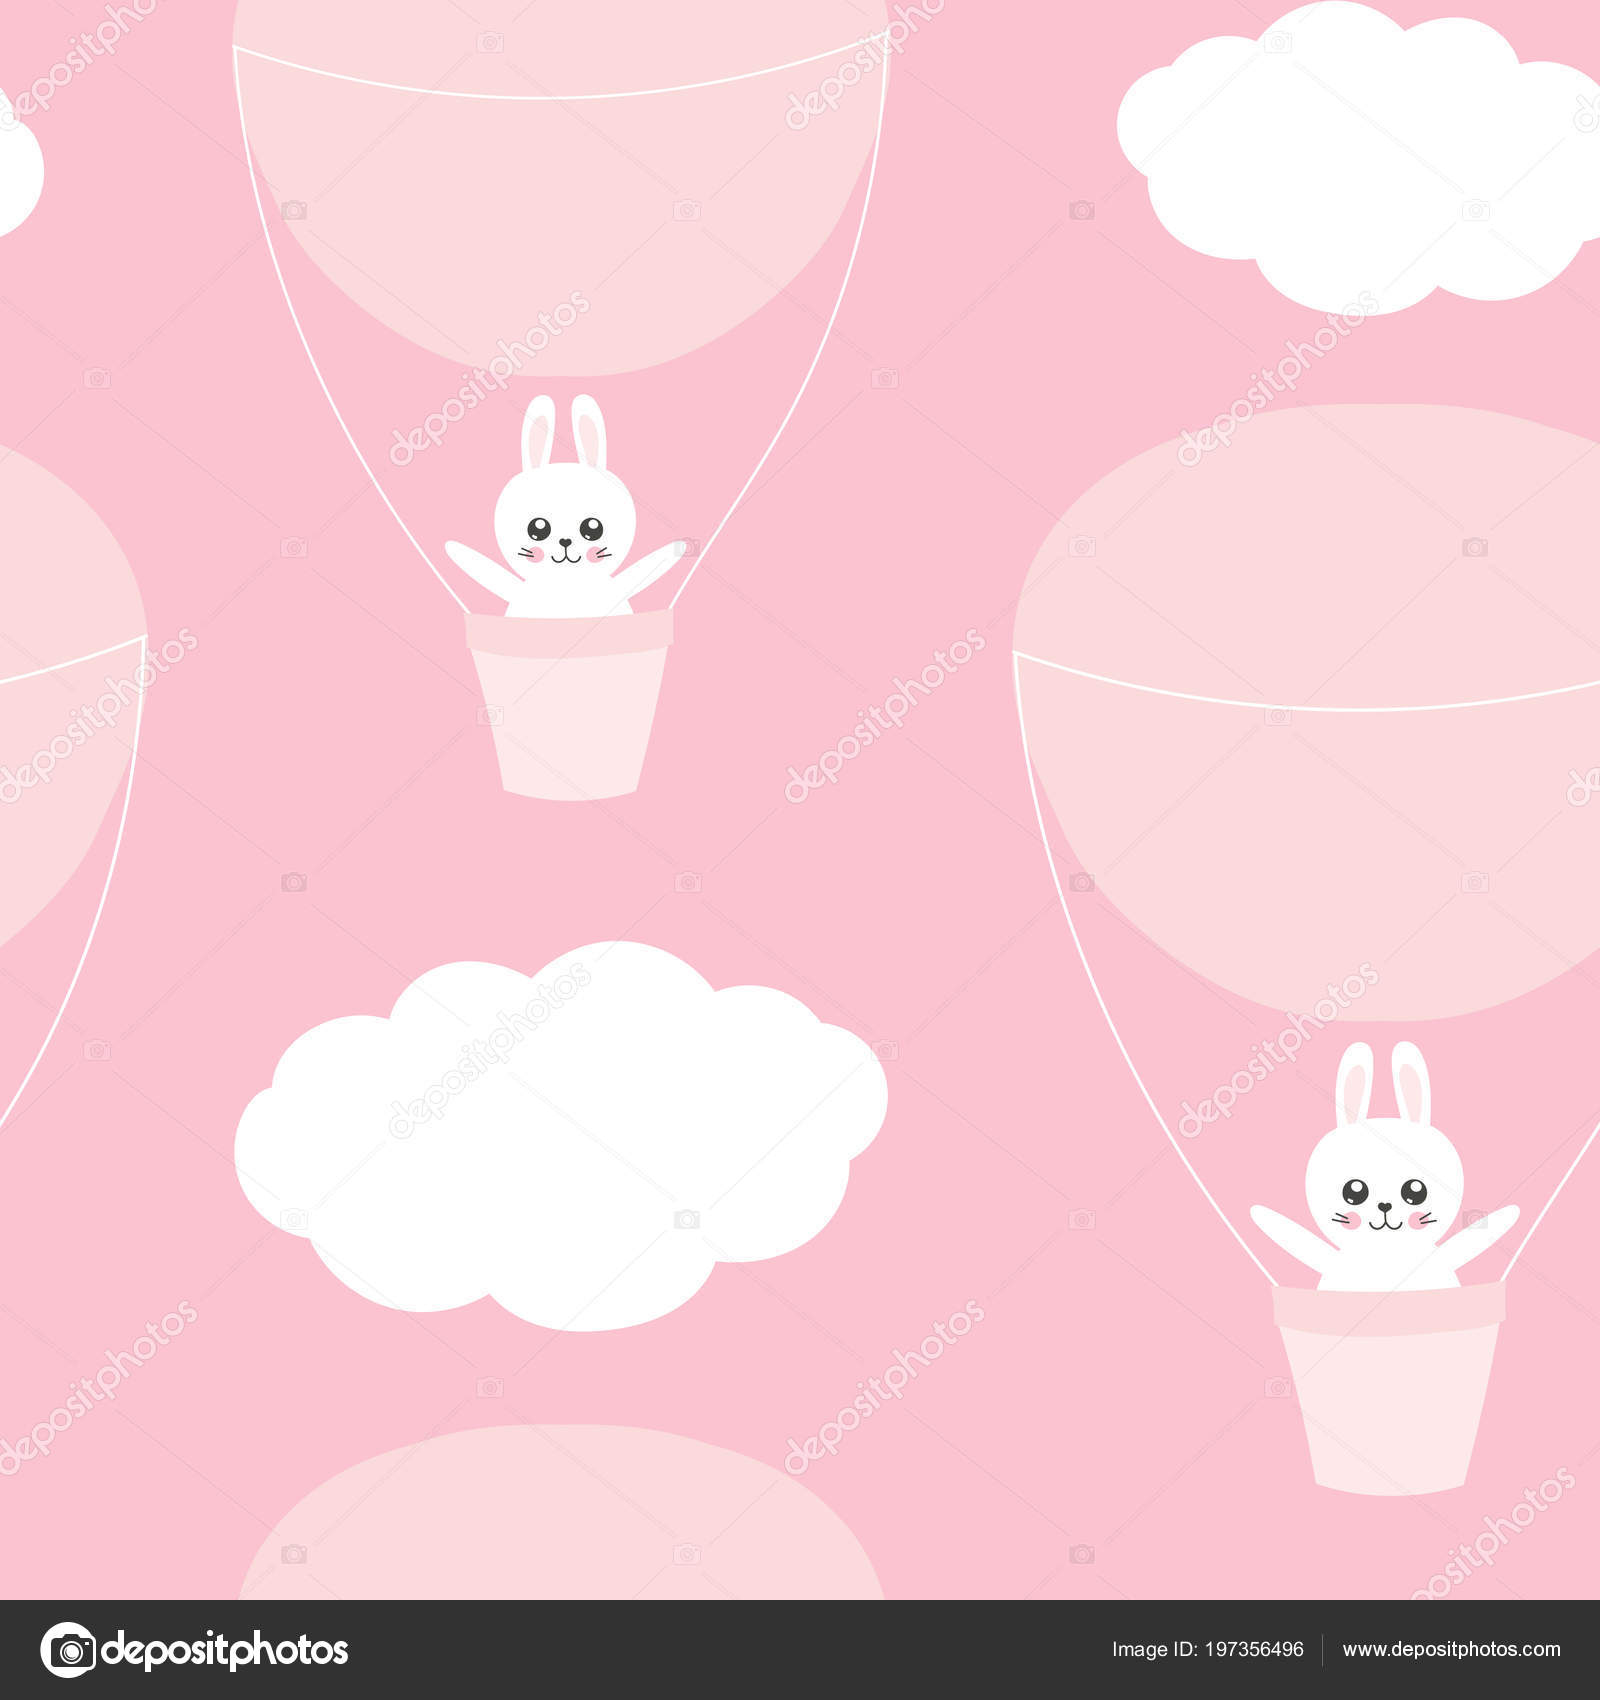 Cute Baby Pattern With Little Bunny Cartoon Animal Girl Print